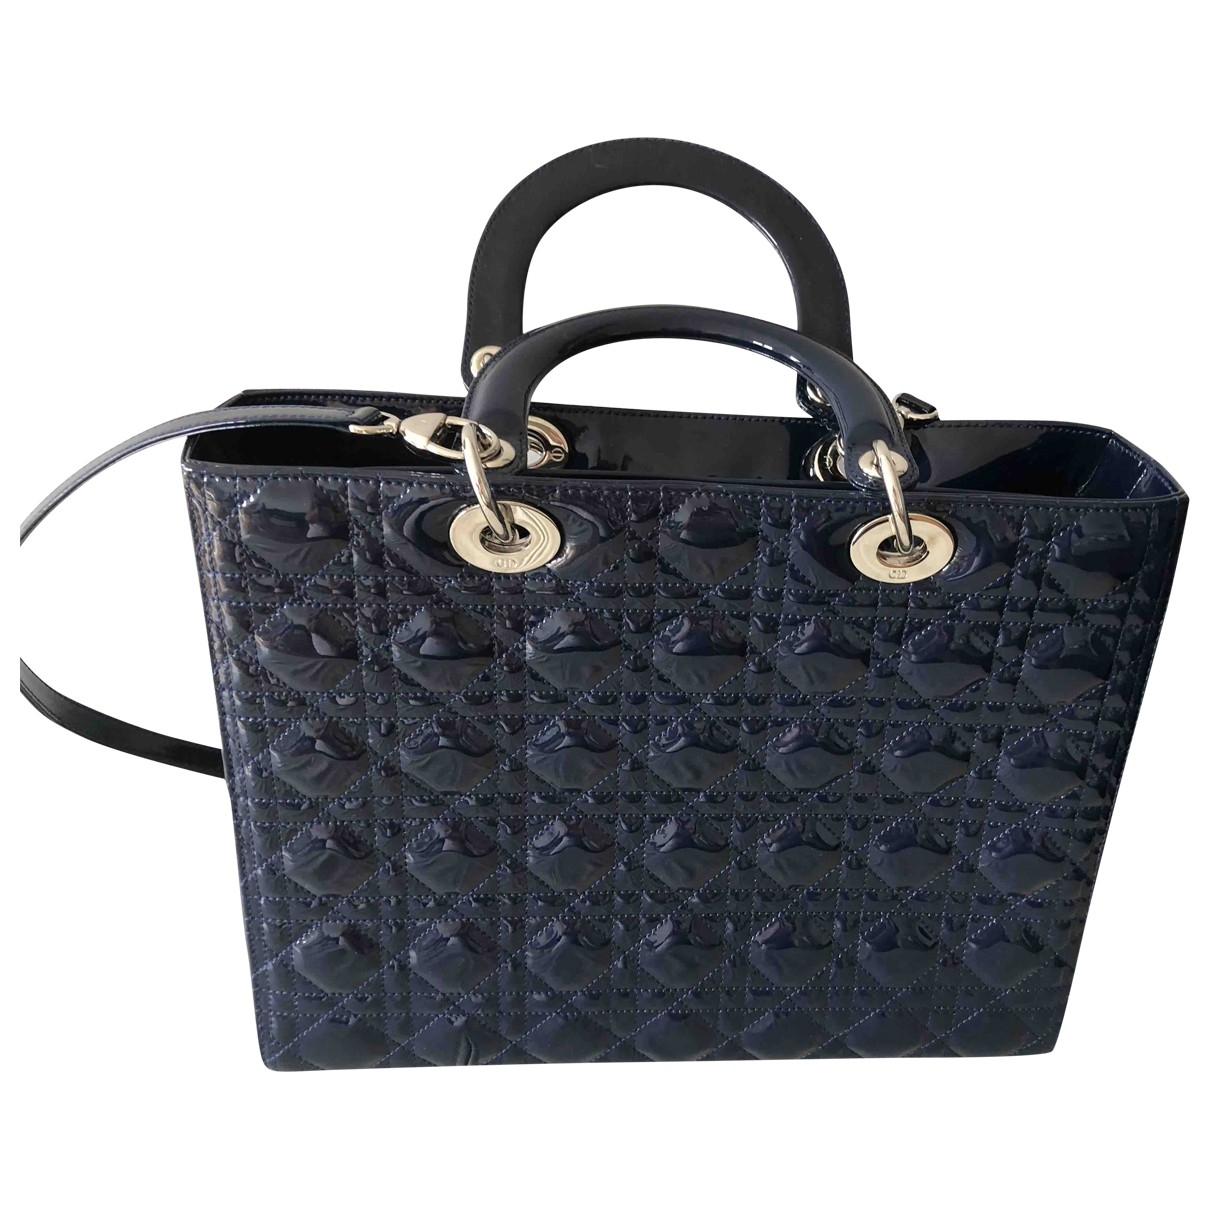 Dior Lady Dior Navy Patent leather handbag for Women \N